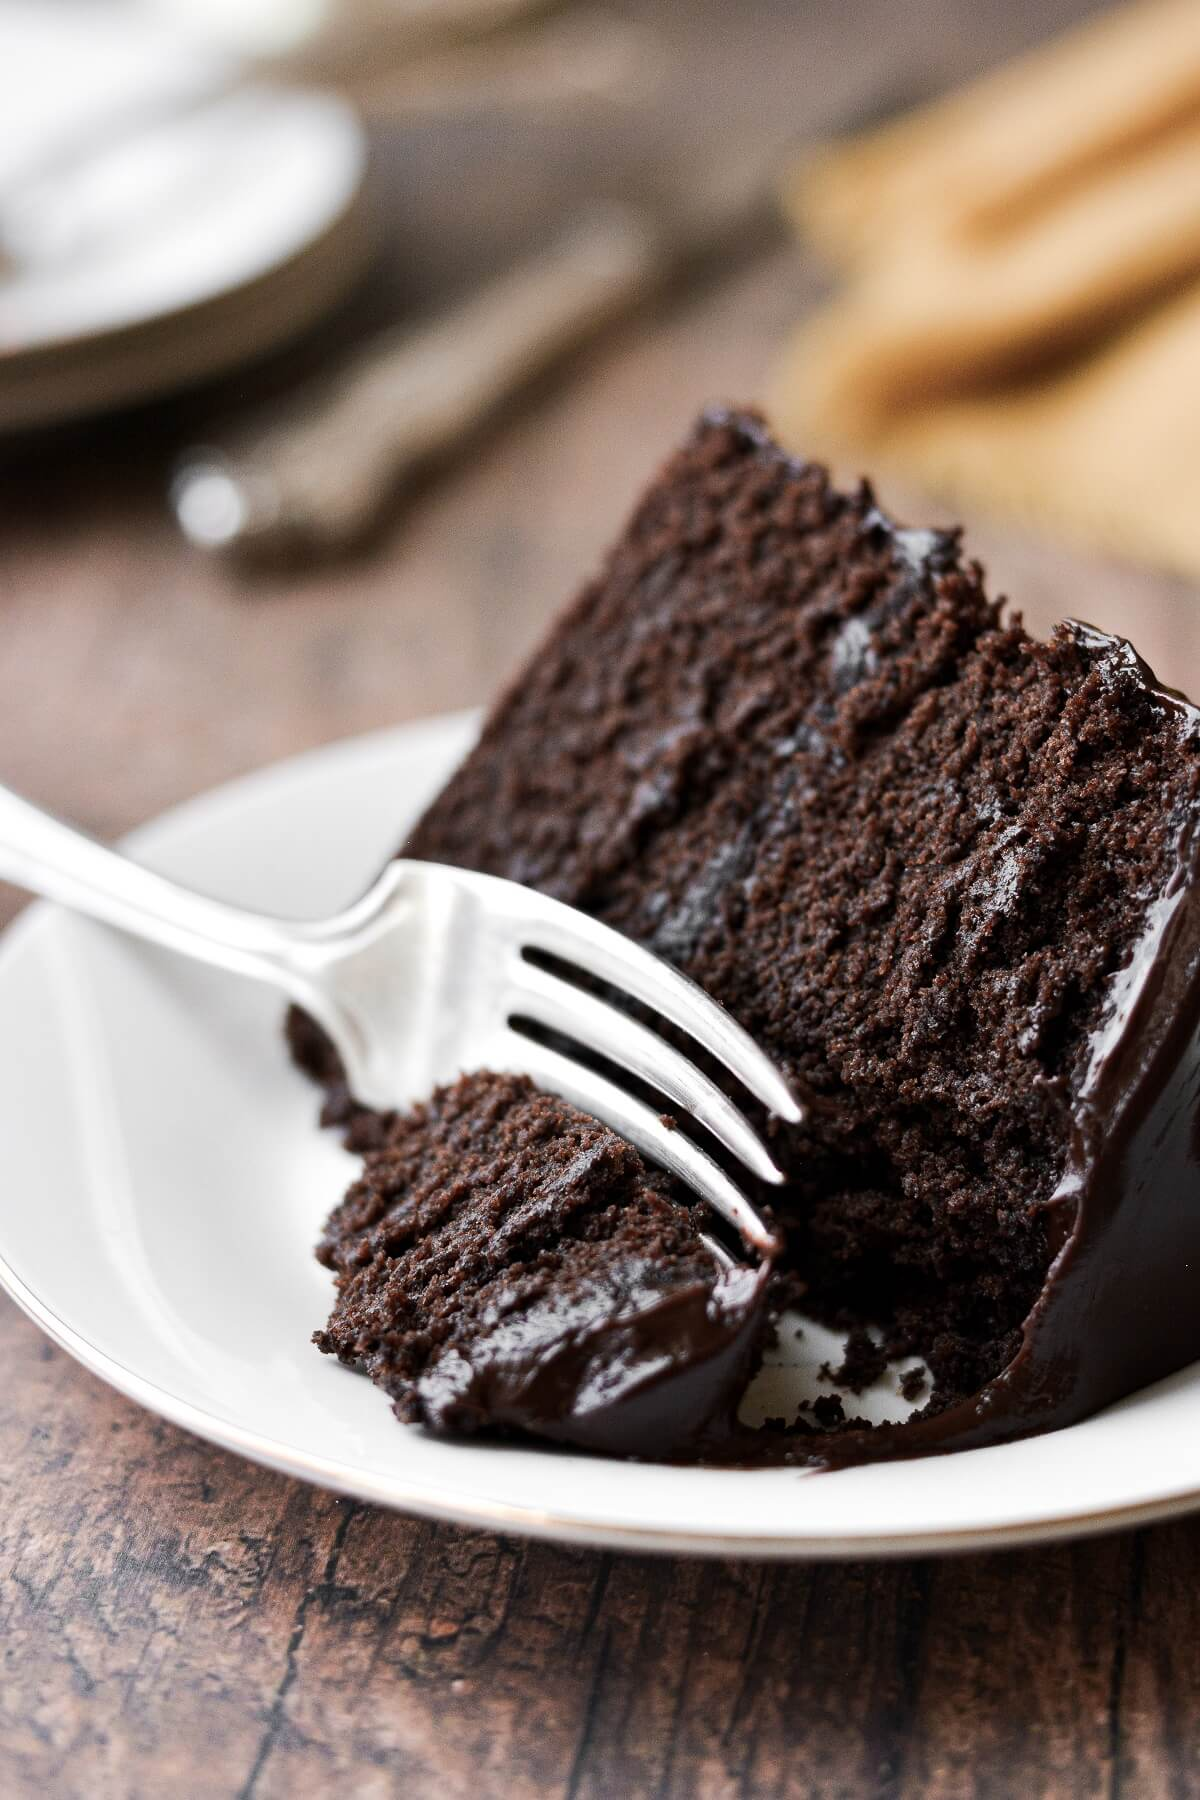 A slice of chocolate fudge cake with a bite taken.